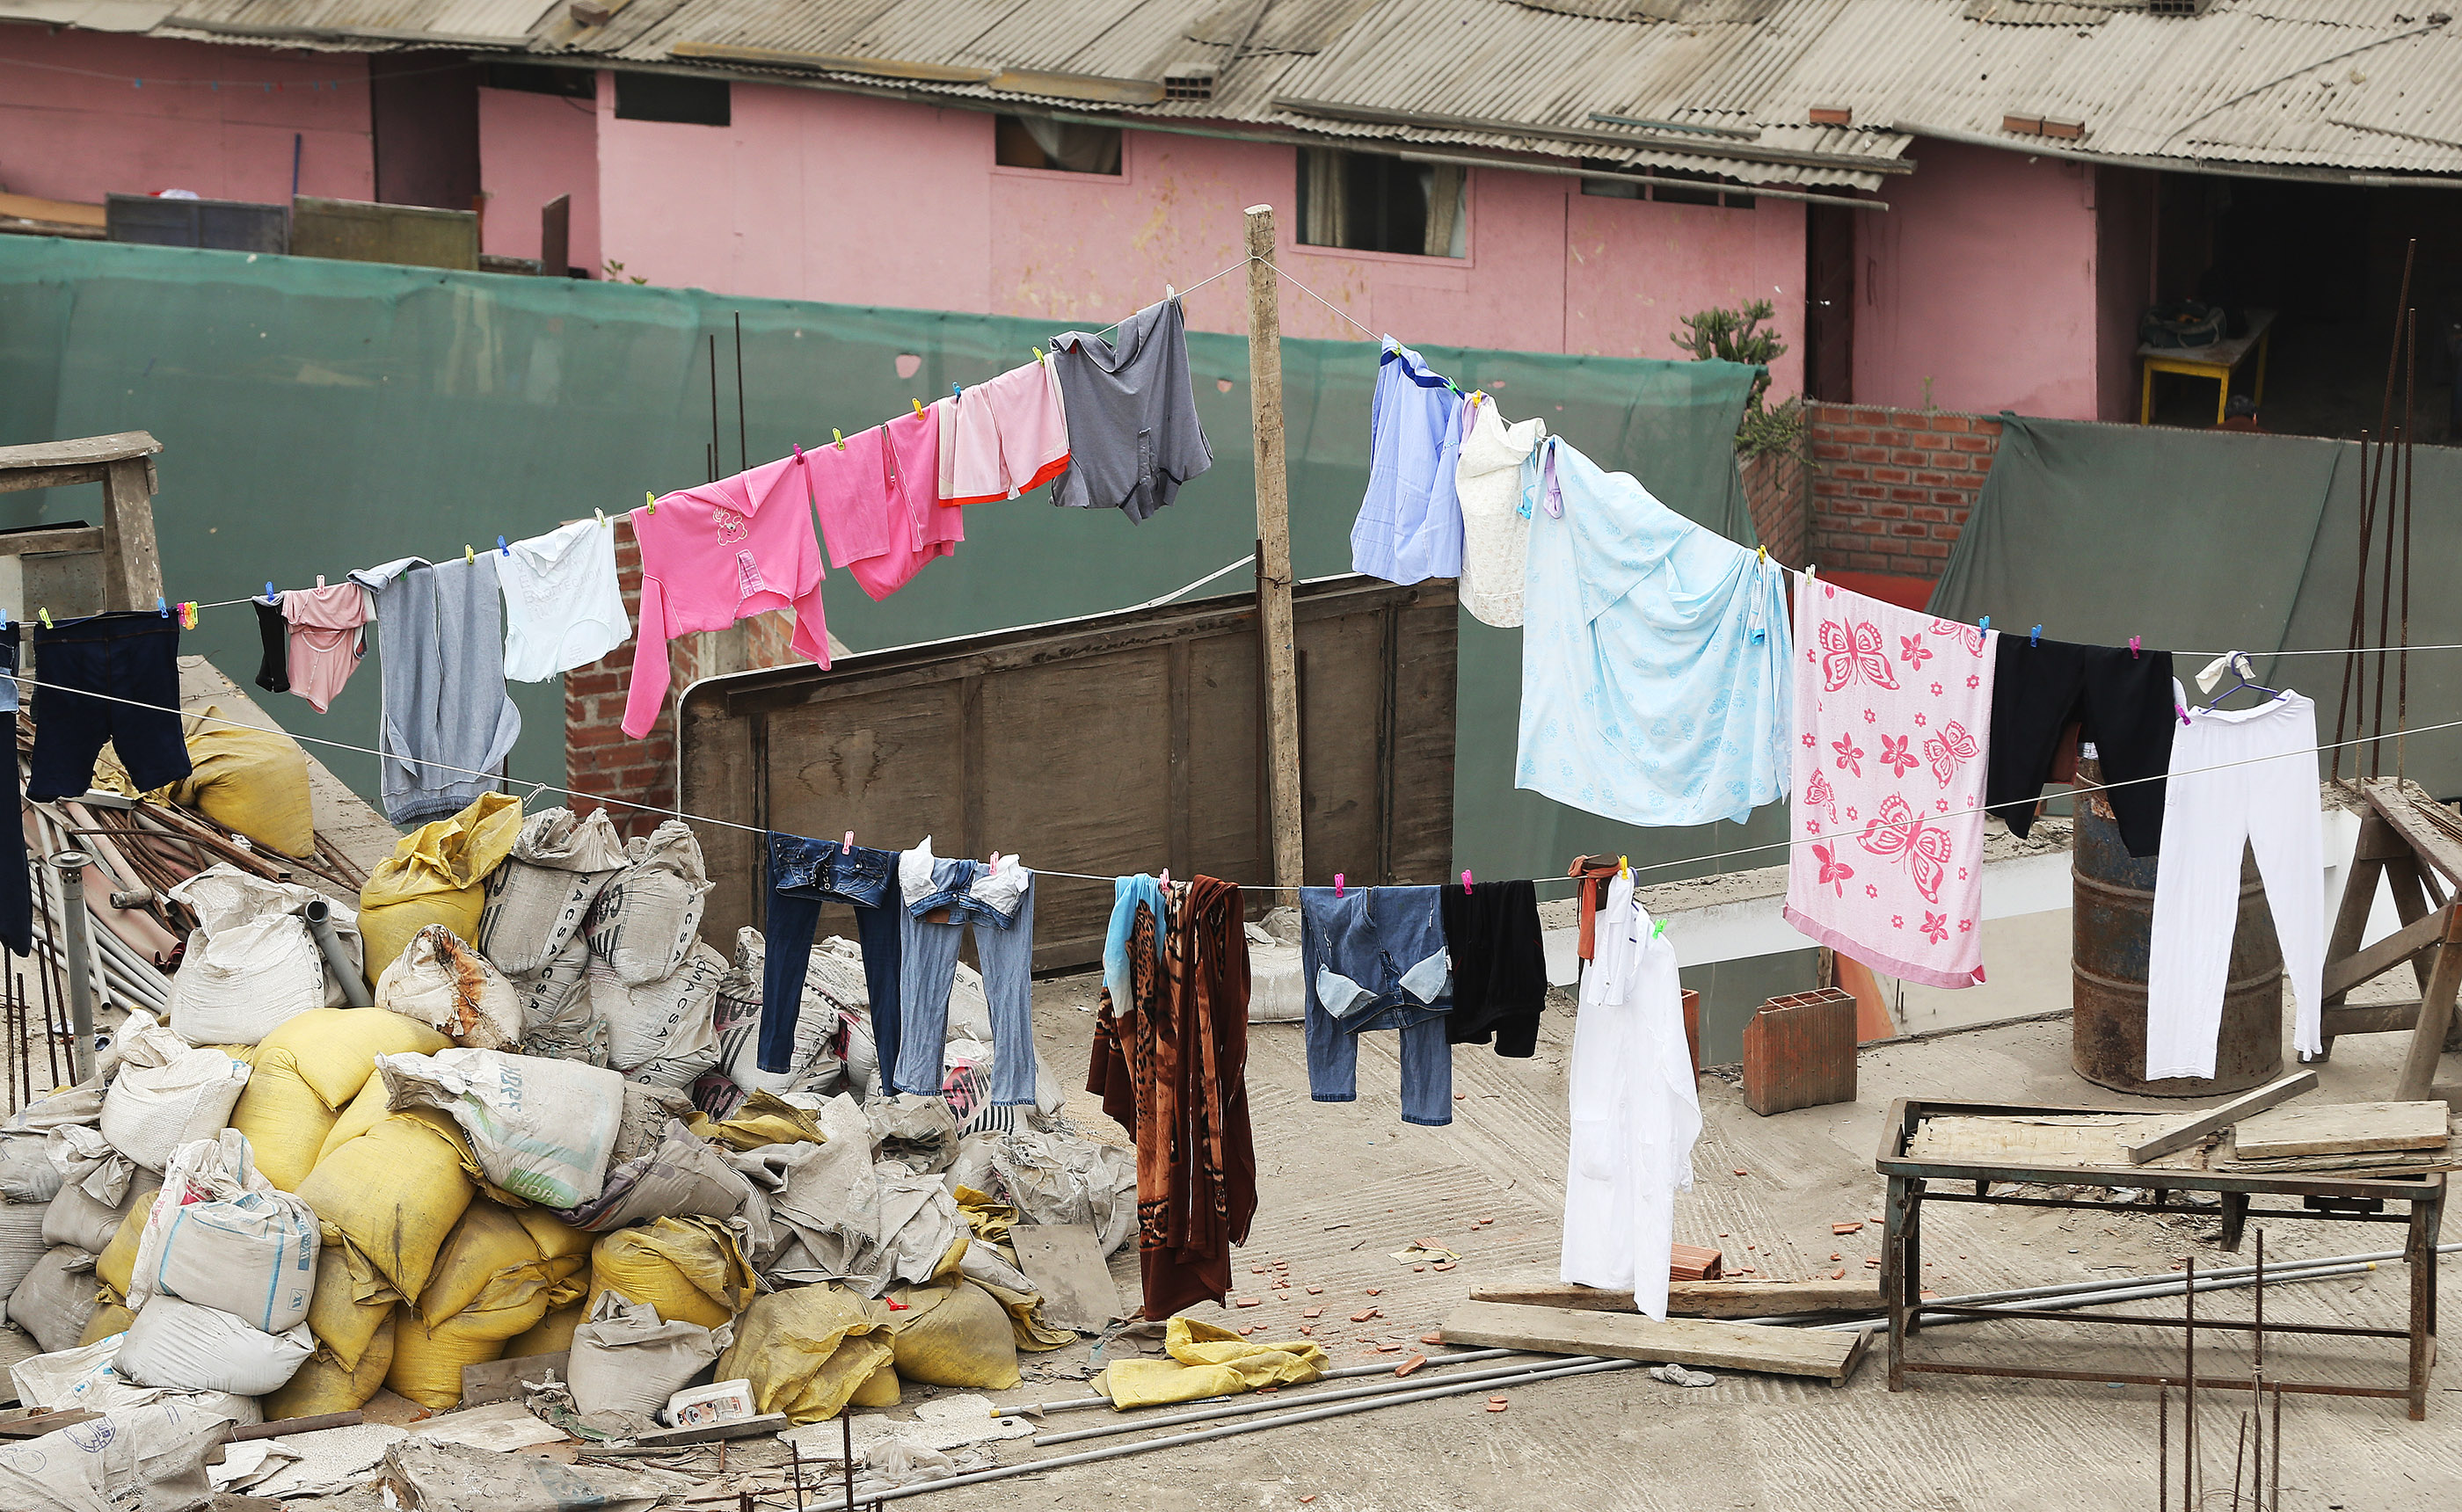 Laundry is hung in Lima, Peru, on Friday, Oct. 19, 2018.